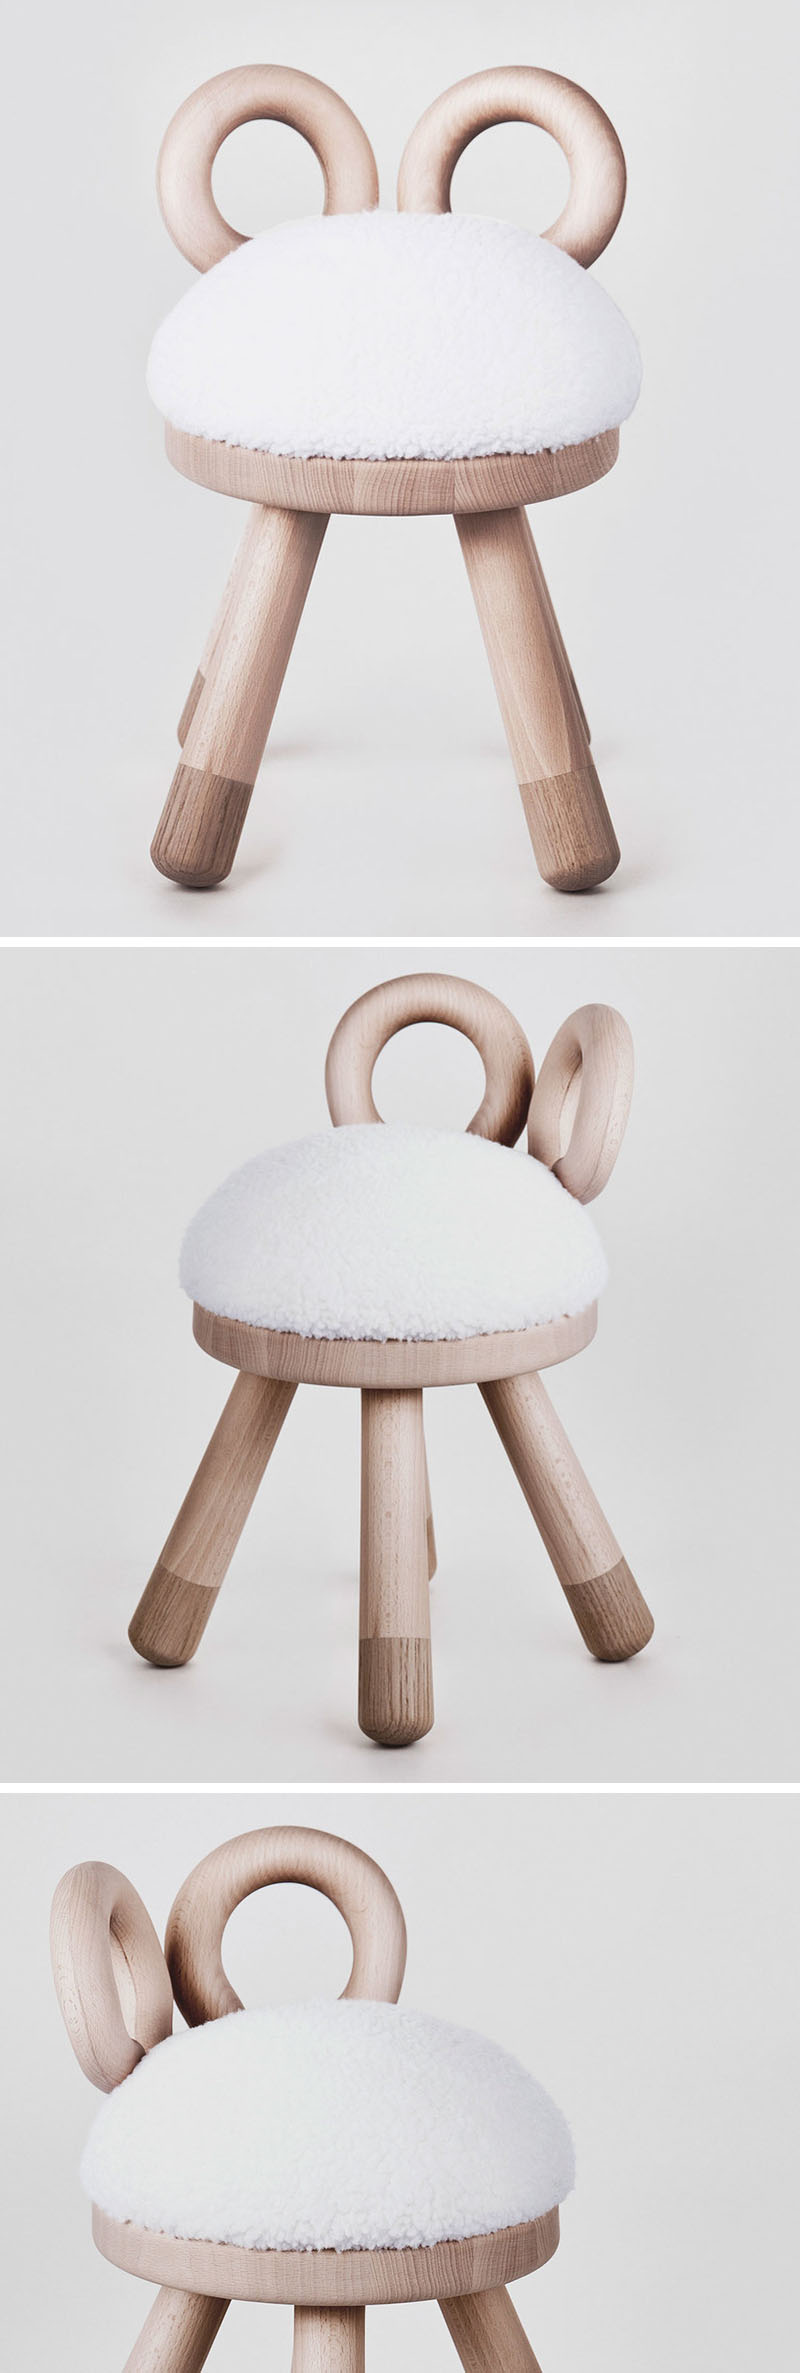 whimsical-farm-animal-stool-sheep-furniture-150517-1243-03